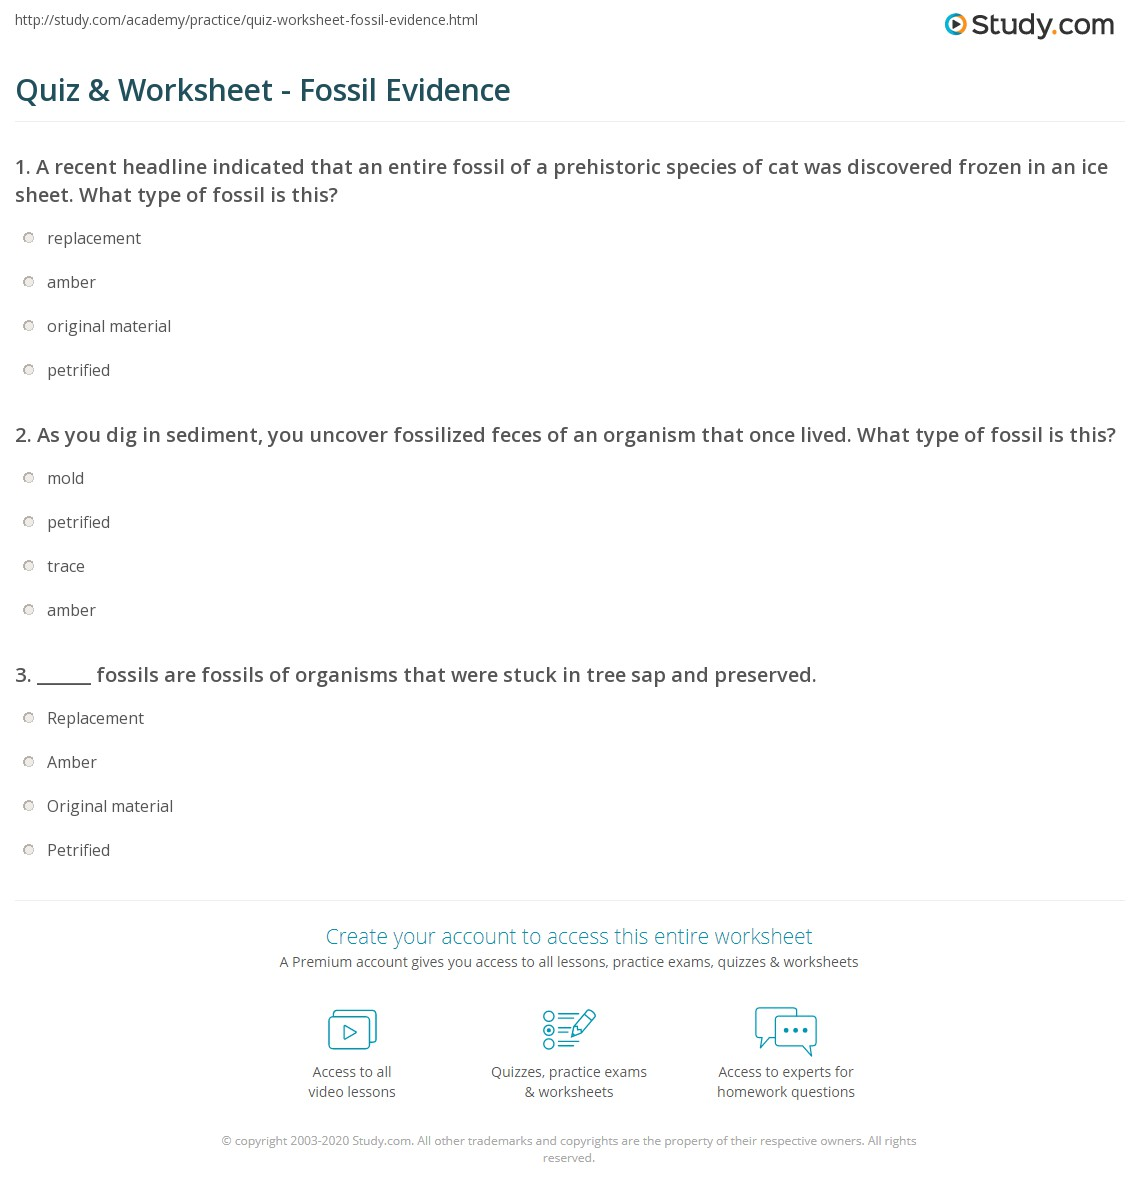 Quiz & Worksheet - Fossil Evidence | Study.com